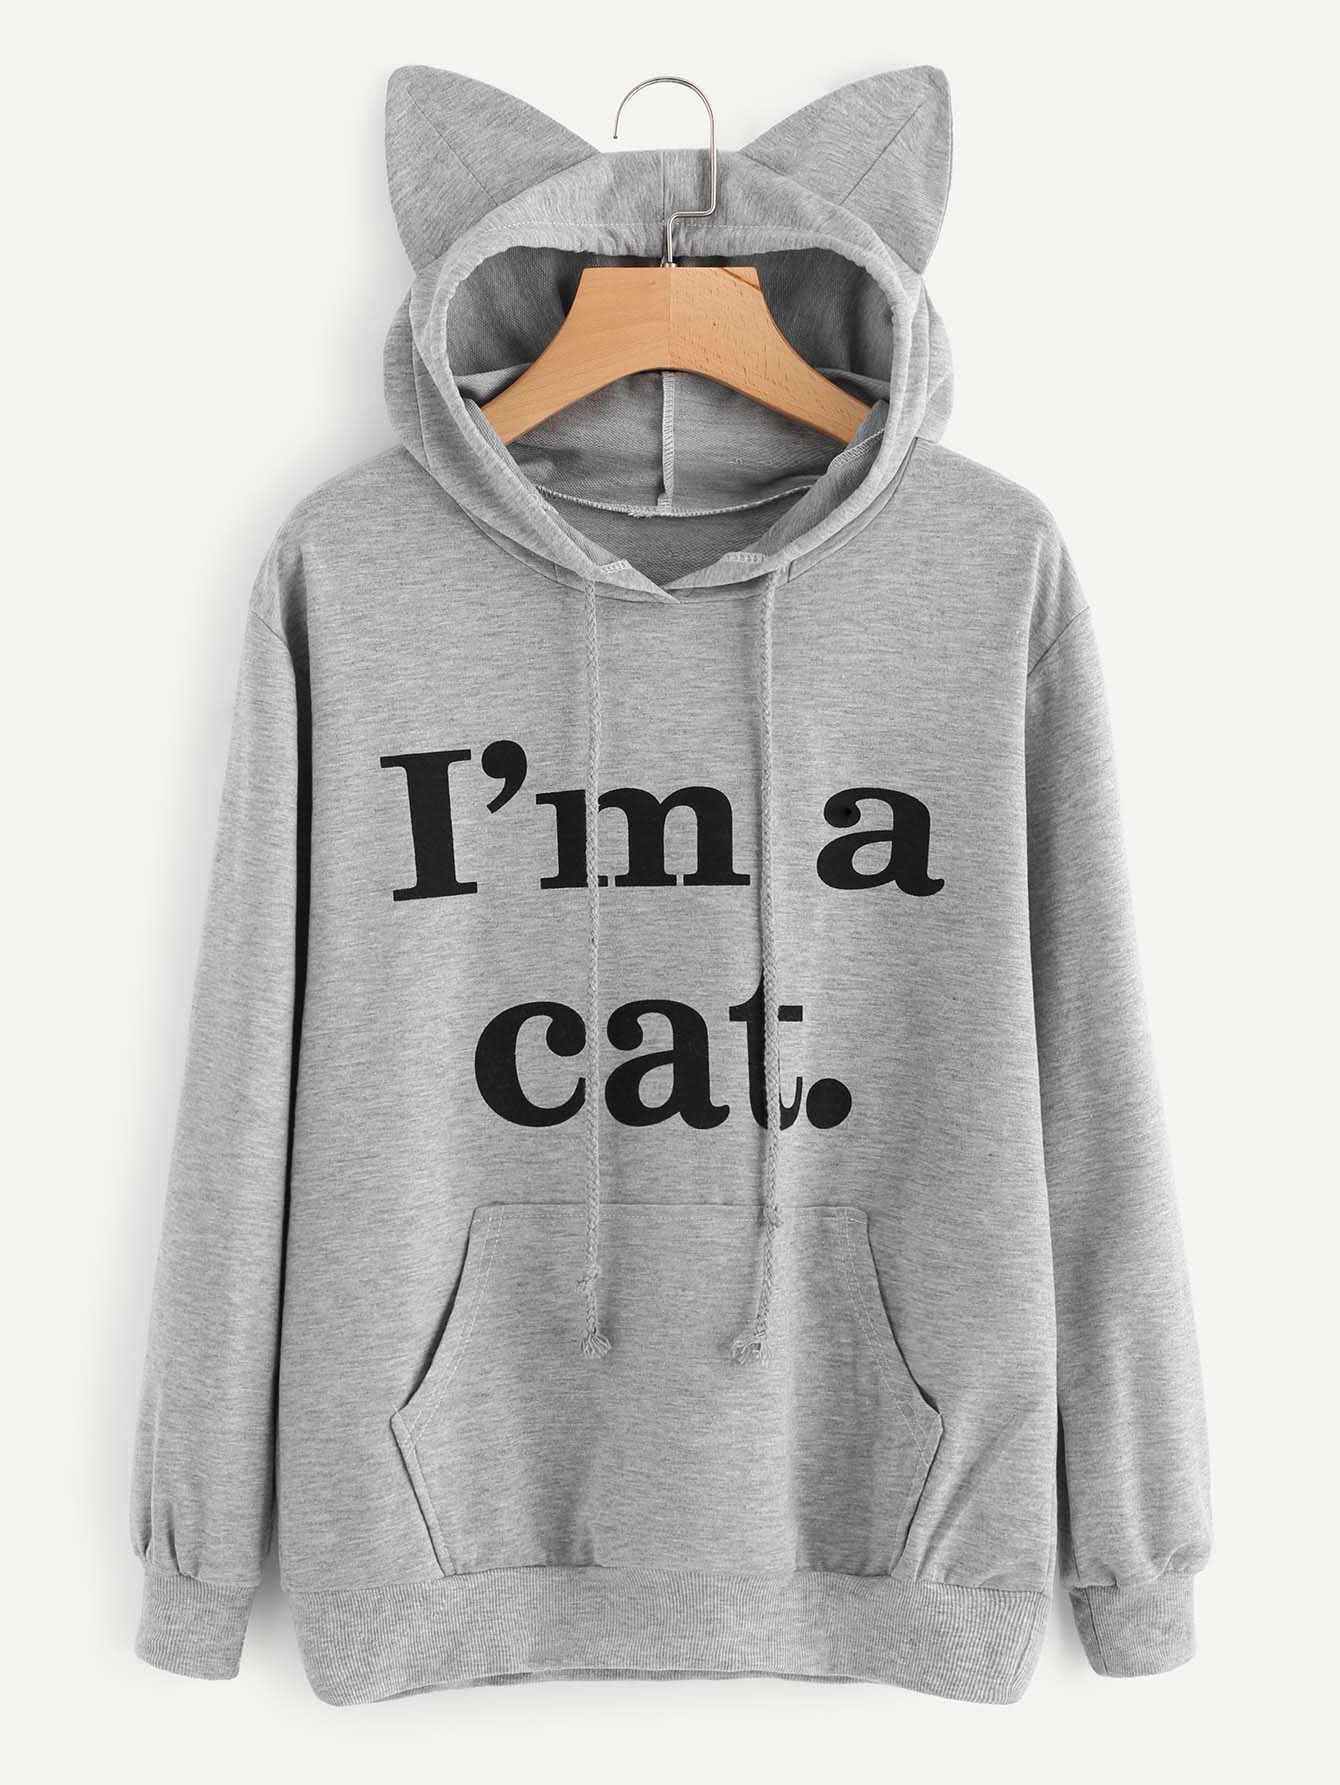 7b87fb4f2da Shop Slogan Print Cat Ear Marled Hoodie online. SheIn offers Slogan Print  Cat Ear Marled